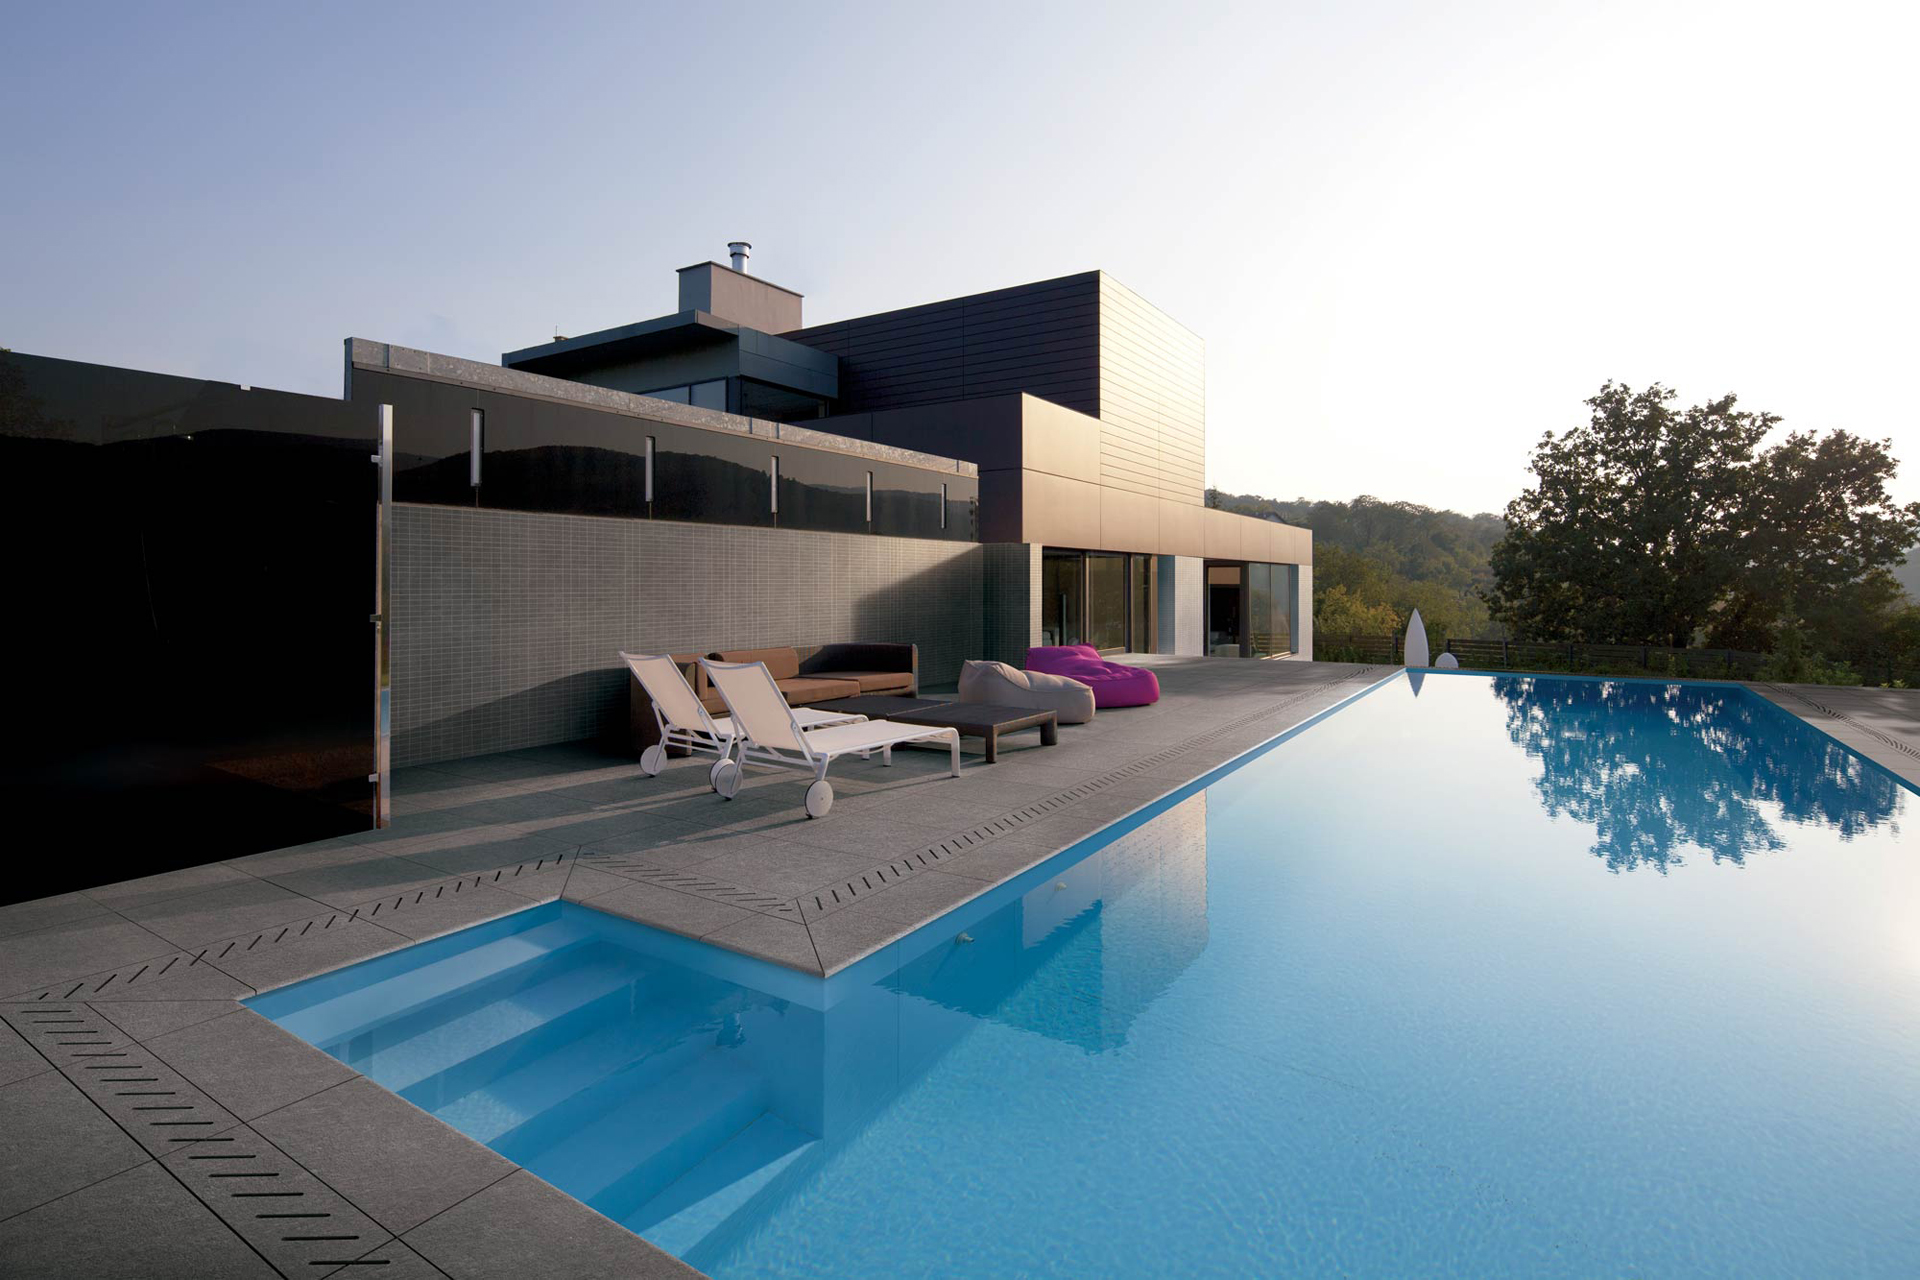 Pool Tiles | Swimming Pool Tiles | Outdoor Pool Tiles | Novoceram